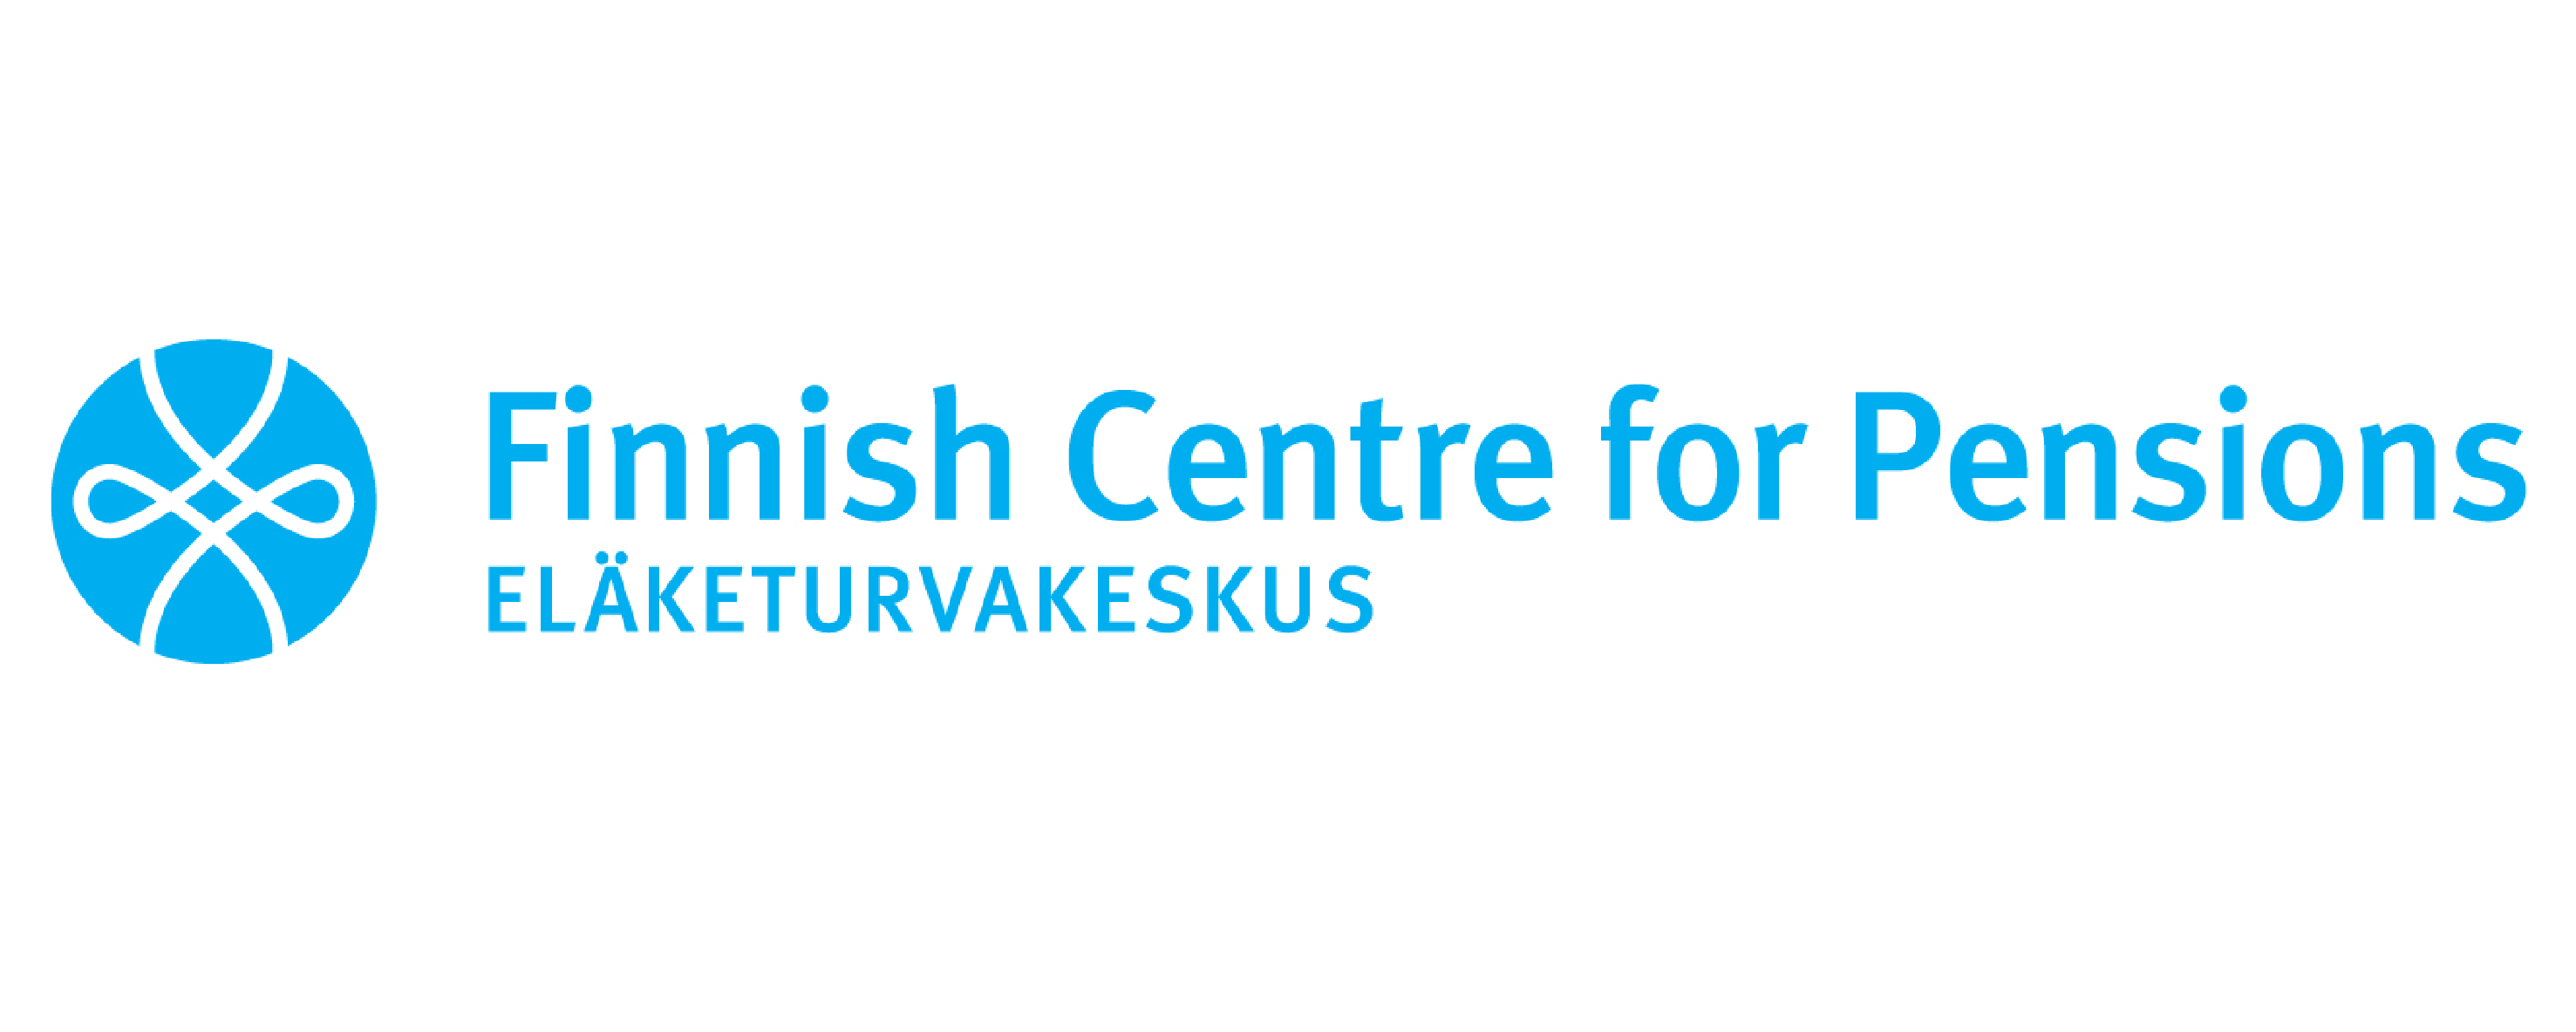 Finnish_Centre_for_Pensions_GetJenny